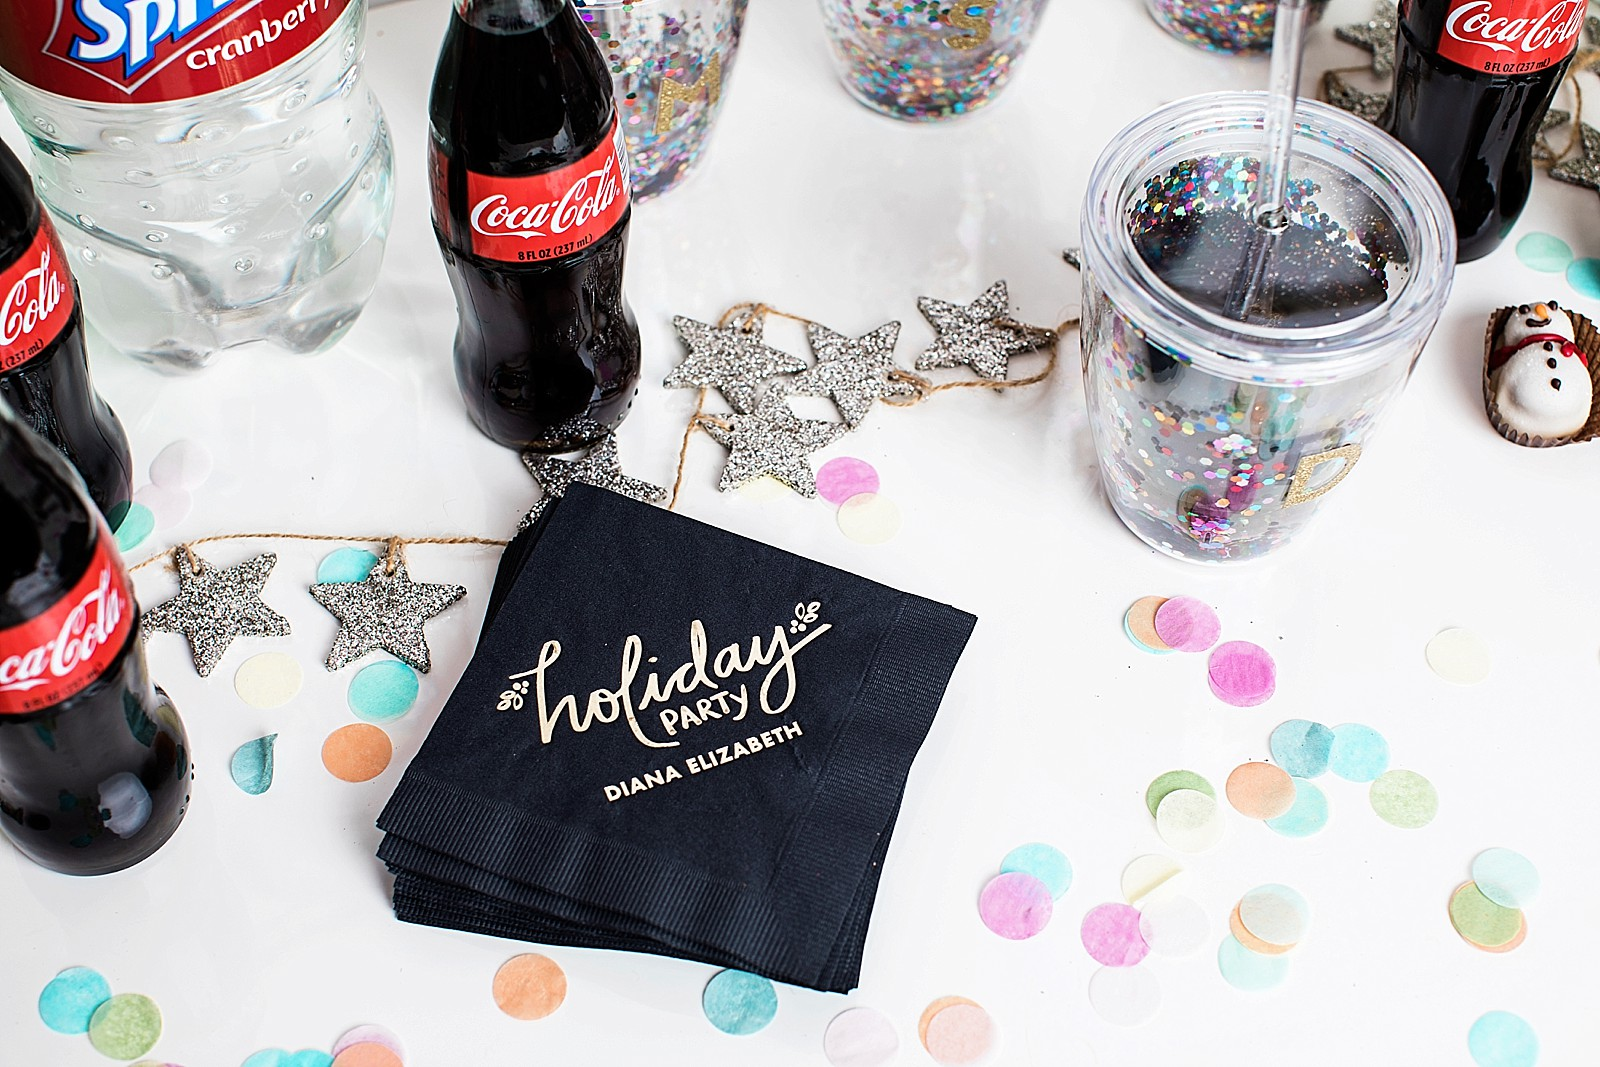 coca-cola-party-christmas-party-dessert-idea-how-to-personalize-tumbler-_0063